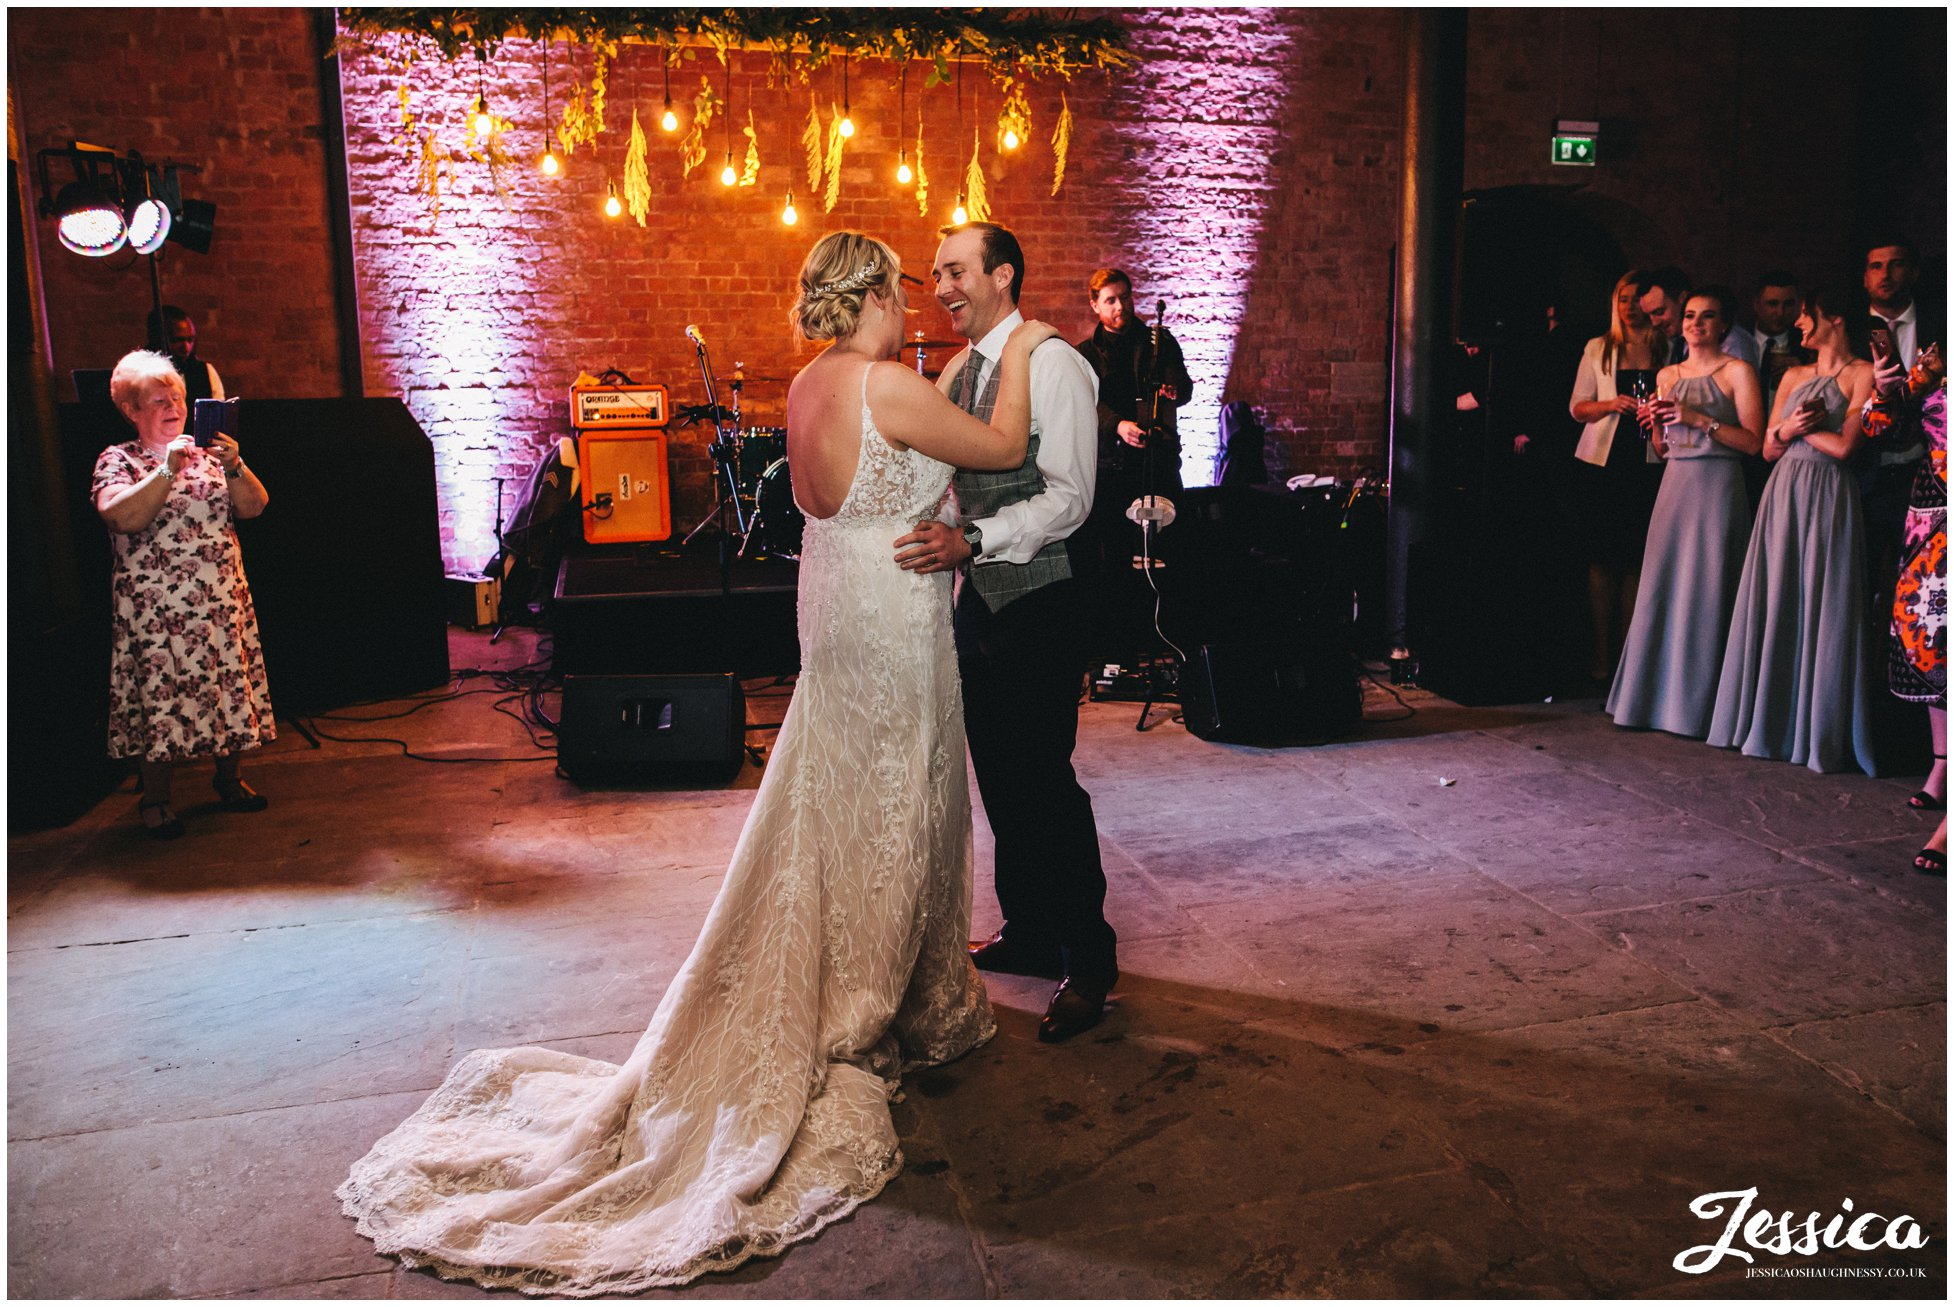 the couple share their first dance at the titanic hotel in liverpool